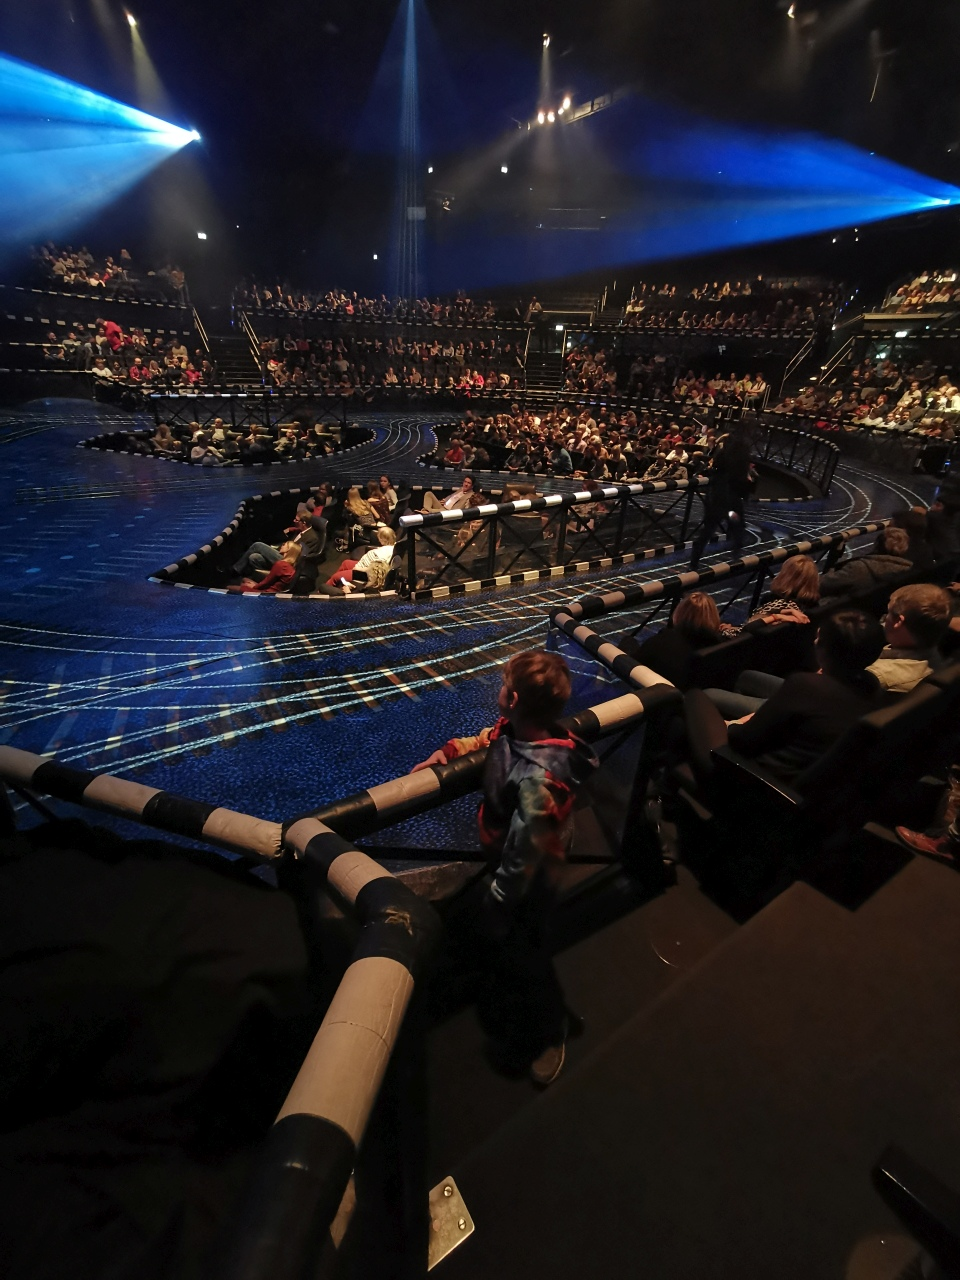 Starlight Theater Bochum